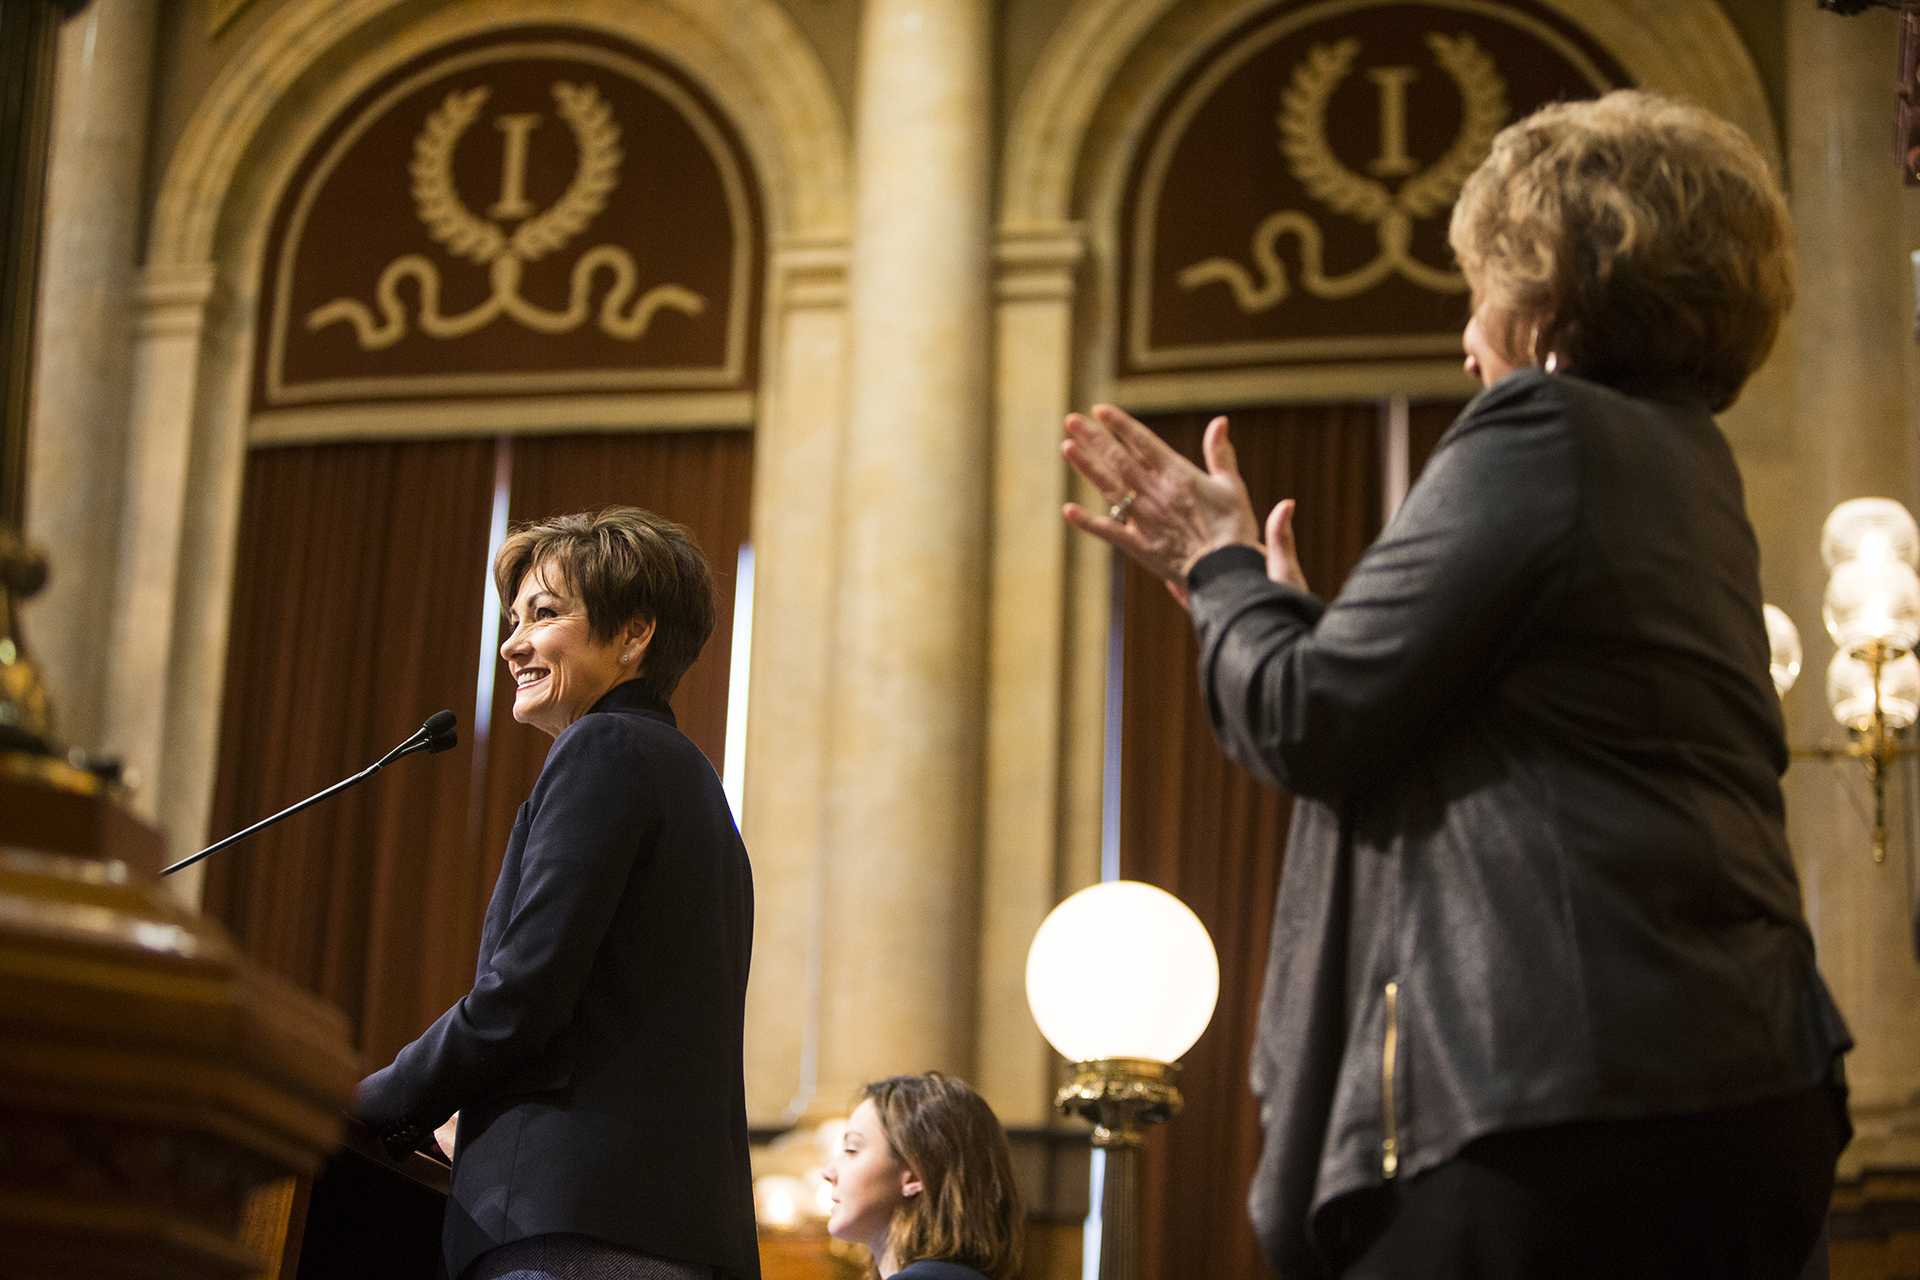 Iowa Gov. Kim Reynolds smiles while Iowa Speaker of the House Rep. Linda L. Upmeyer cheers during Gov. Reynolds first Condition of the State address in the Iowa State Capitol in Des Moines on Tuesday, Jan. 9, 2018. Reynolds took over the governor office in May of 2017. (Joseph Cress/The Daily Iowan)